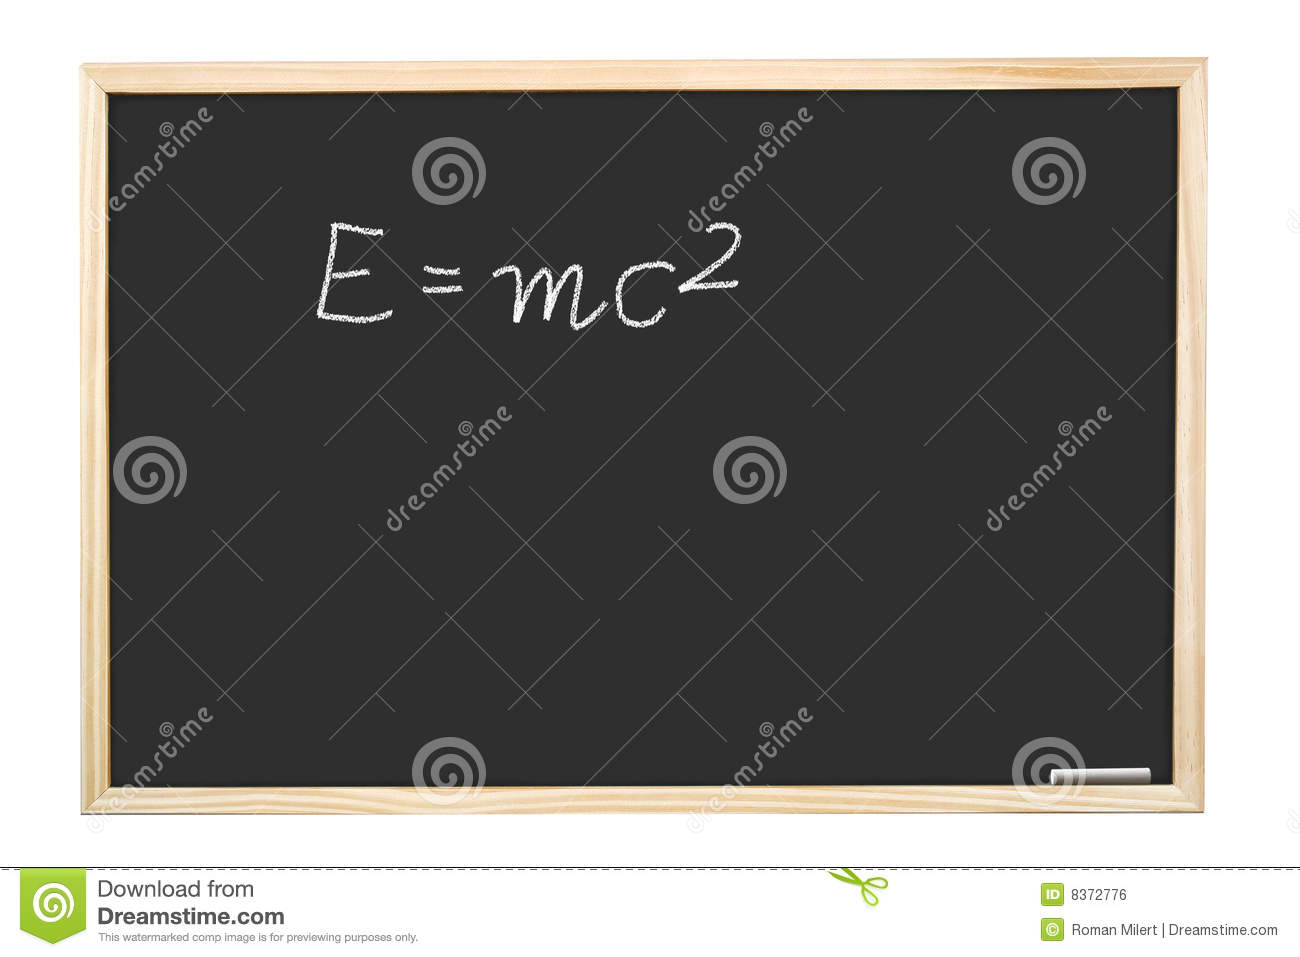 Emc2  Solving the Equation with Worked Examples